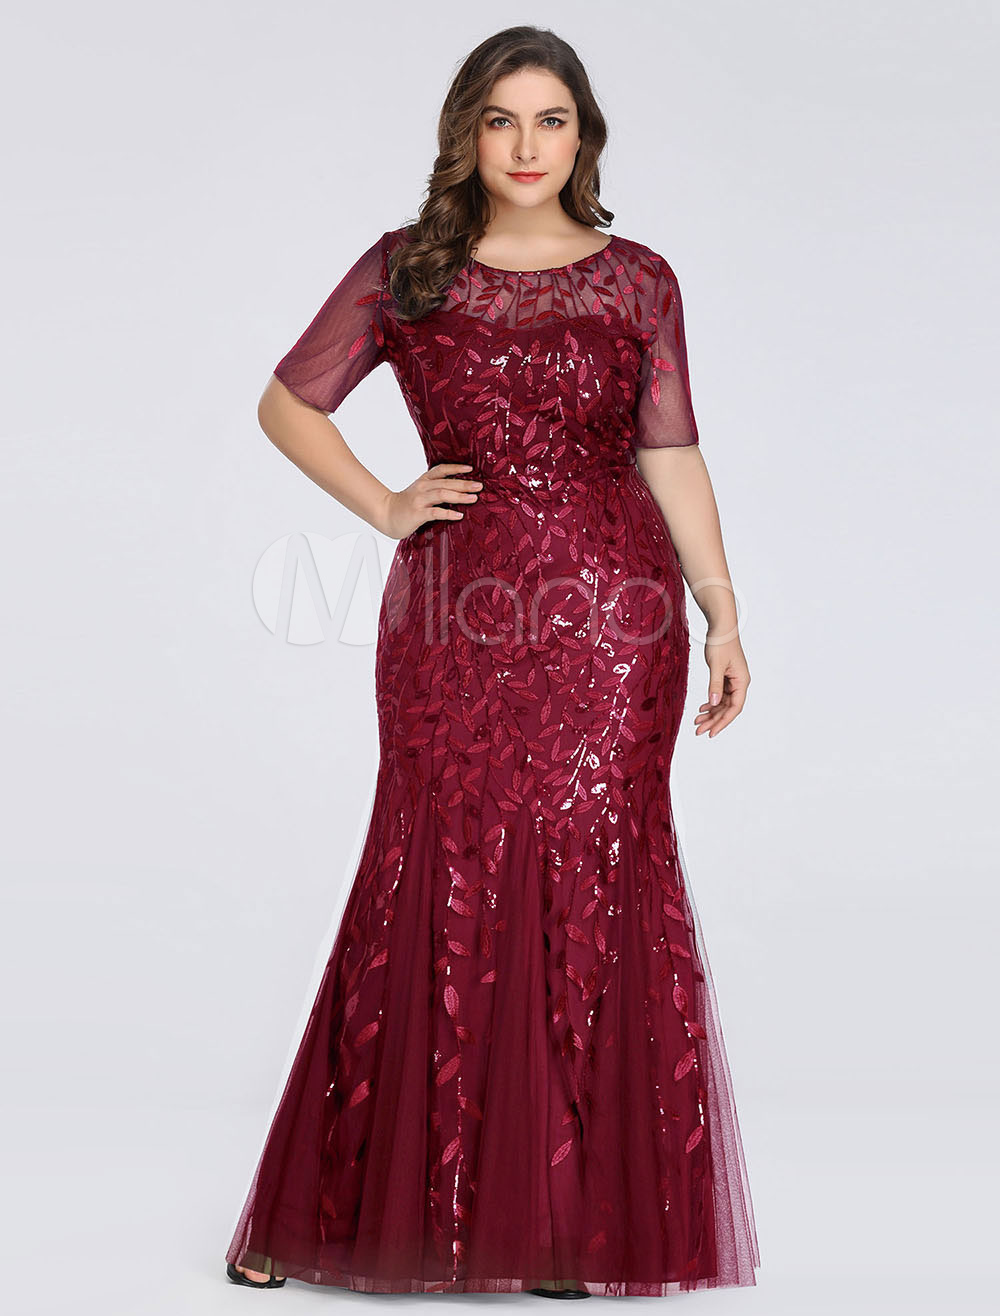 Burgandy Prom Dress 2020 Sequin Mermaid Plus Size Short Sleeve Formal Party  Wedding Guest Mother Dresses